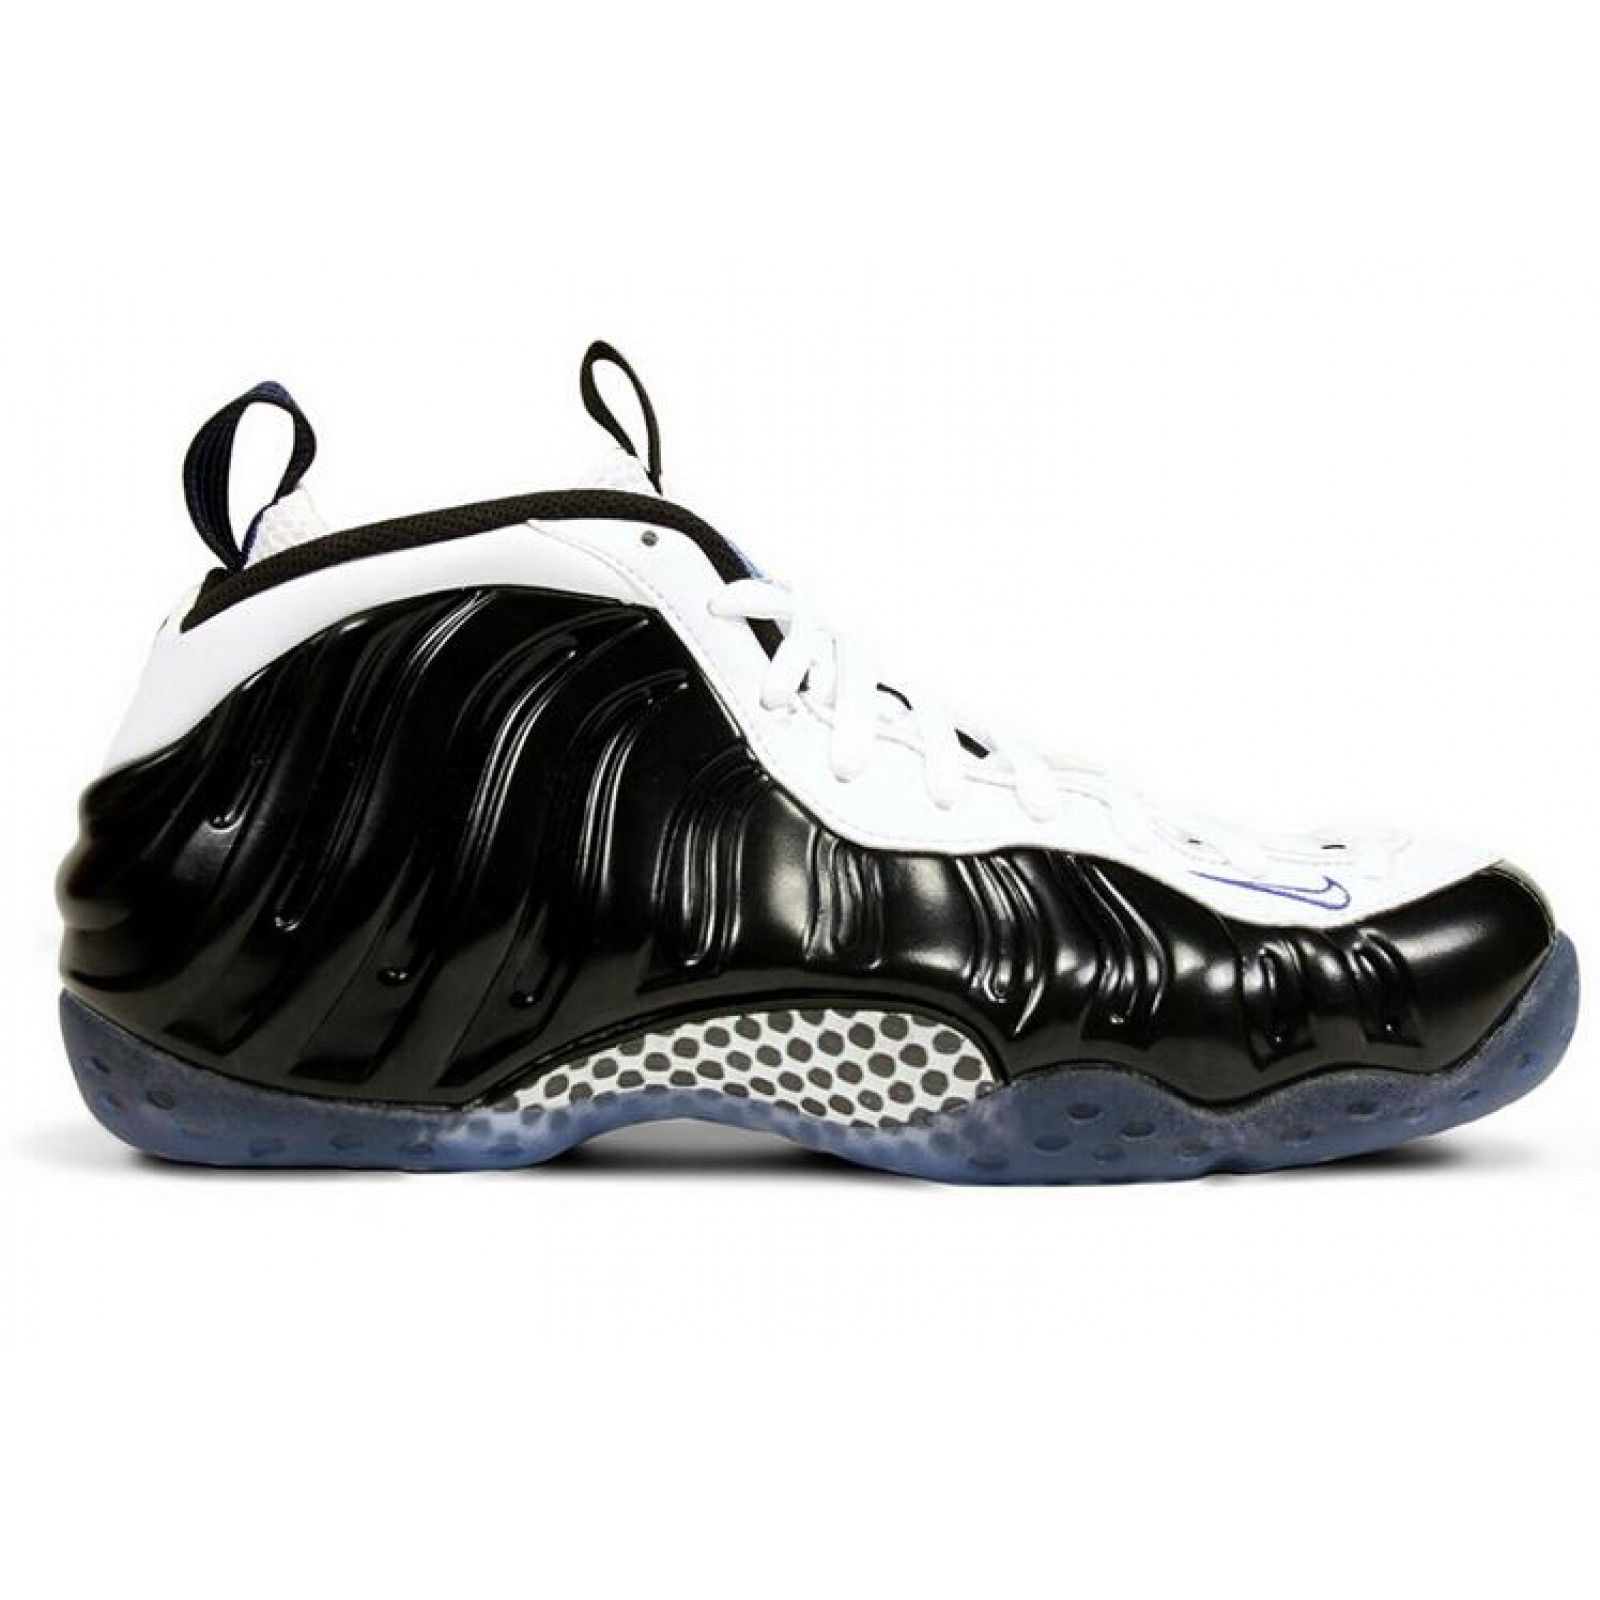 low priced c1011 79b6f 314996-005 Nike Air Foamposite One Black White-Game Royal Online  149.00  http